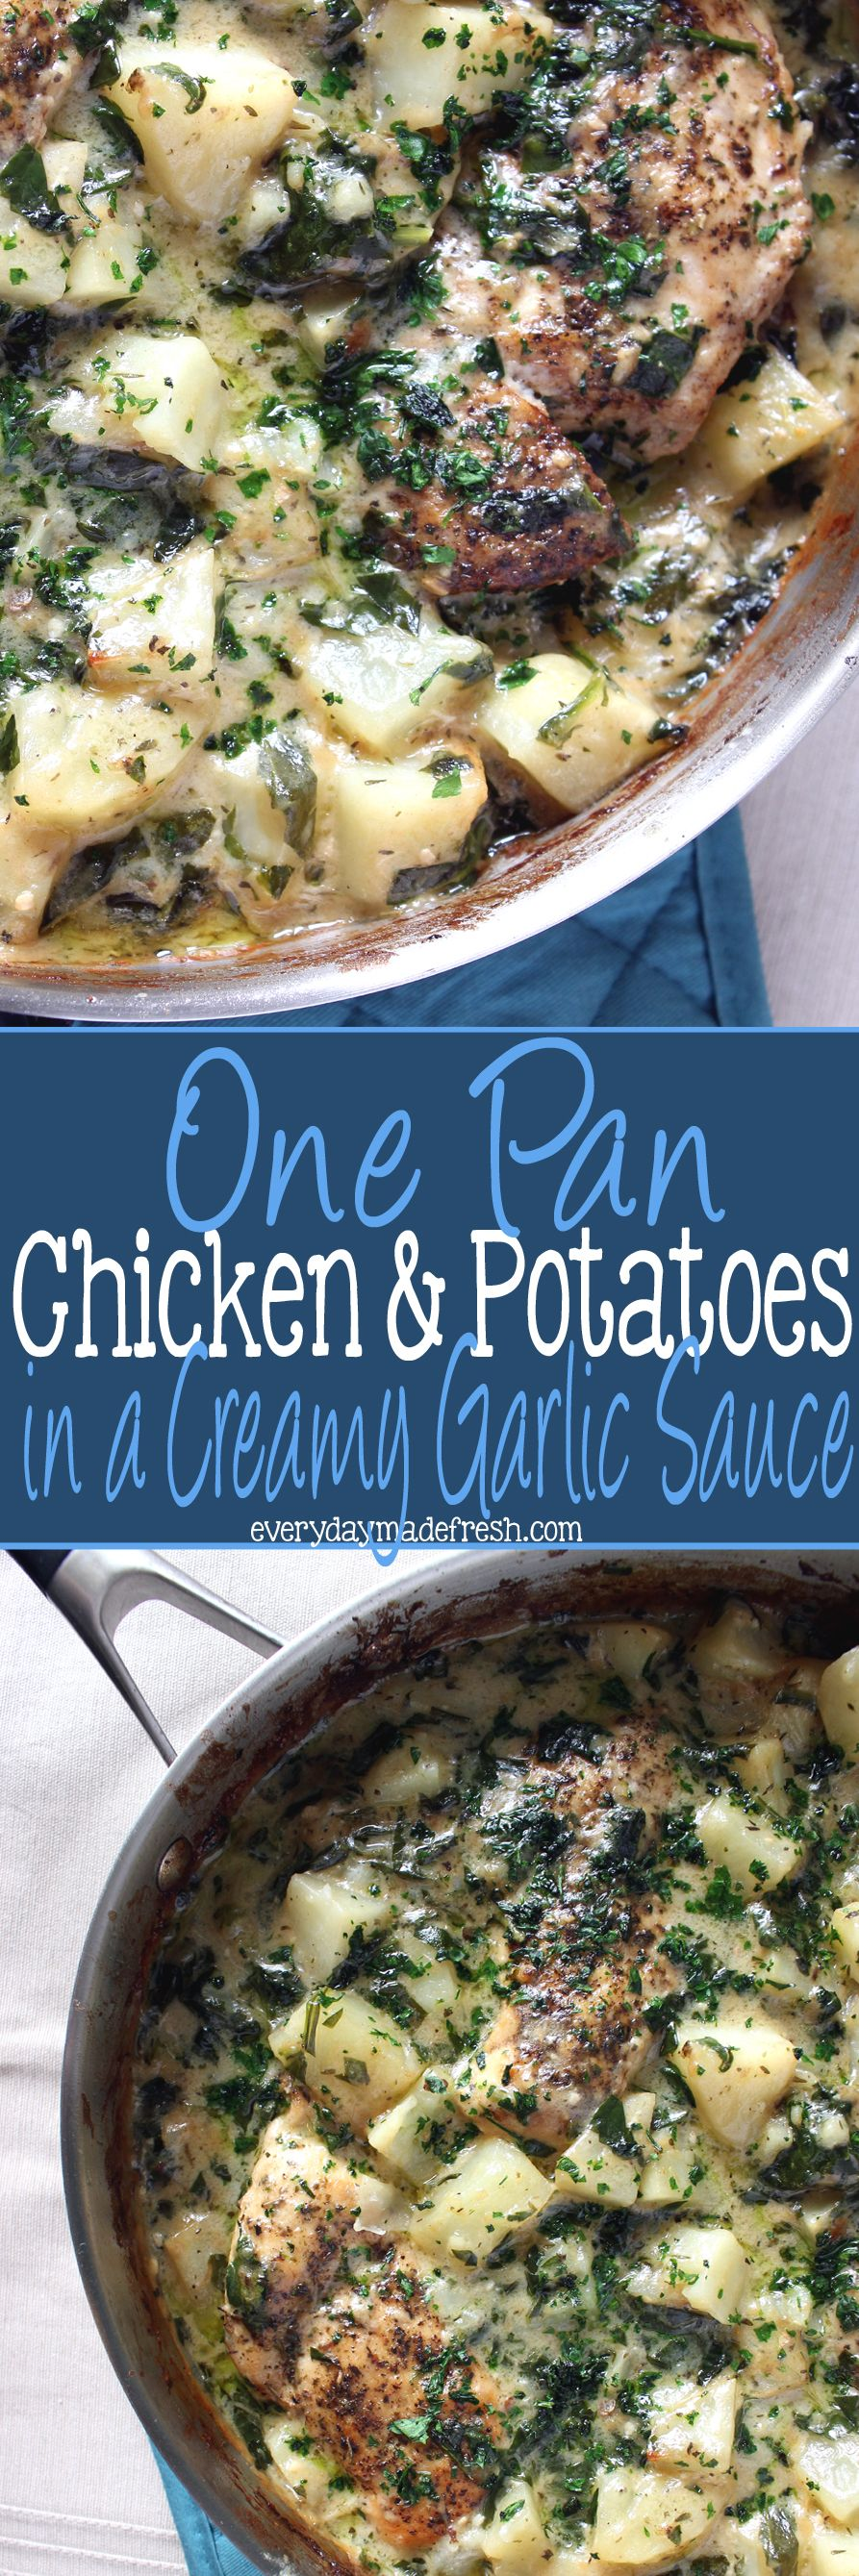 One Pan Chicken & Potatoes in a Creamy Garlic Sauce | Recipe ...